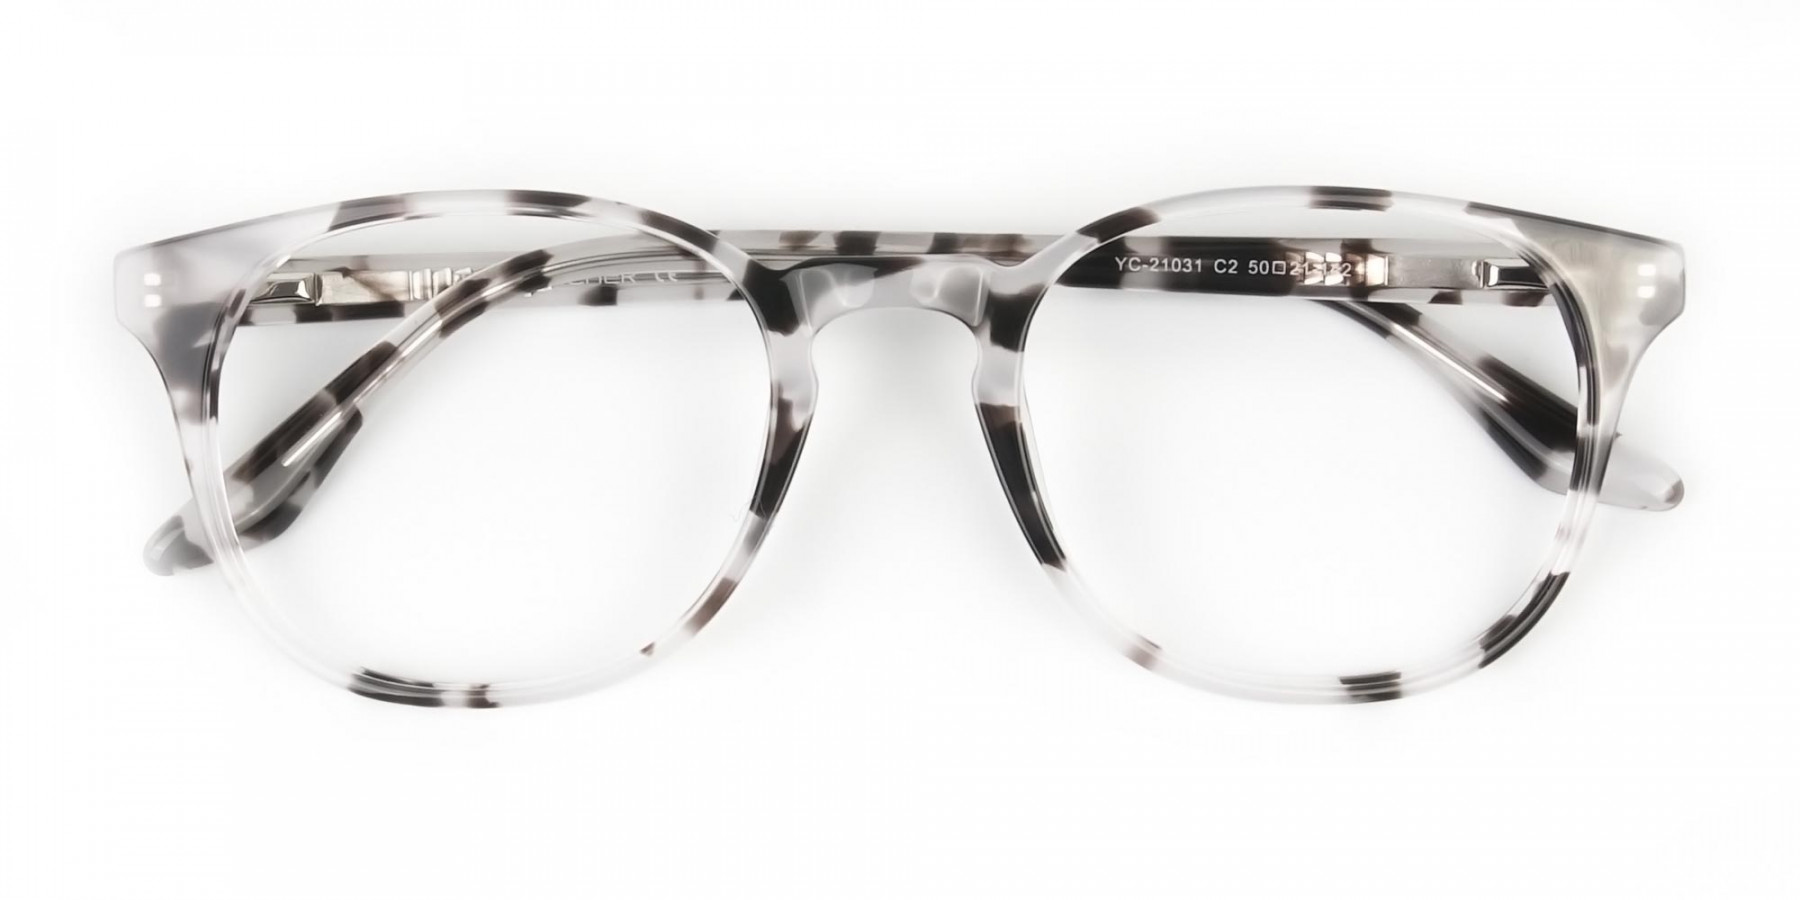 Marble Grey Glasses Frames in Wayfarer - 1